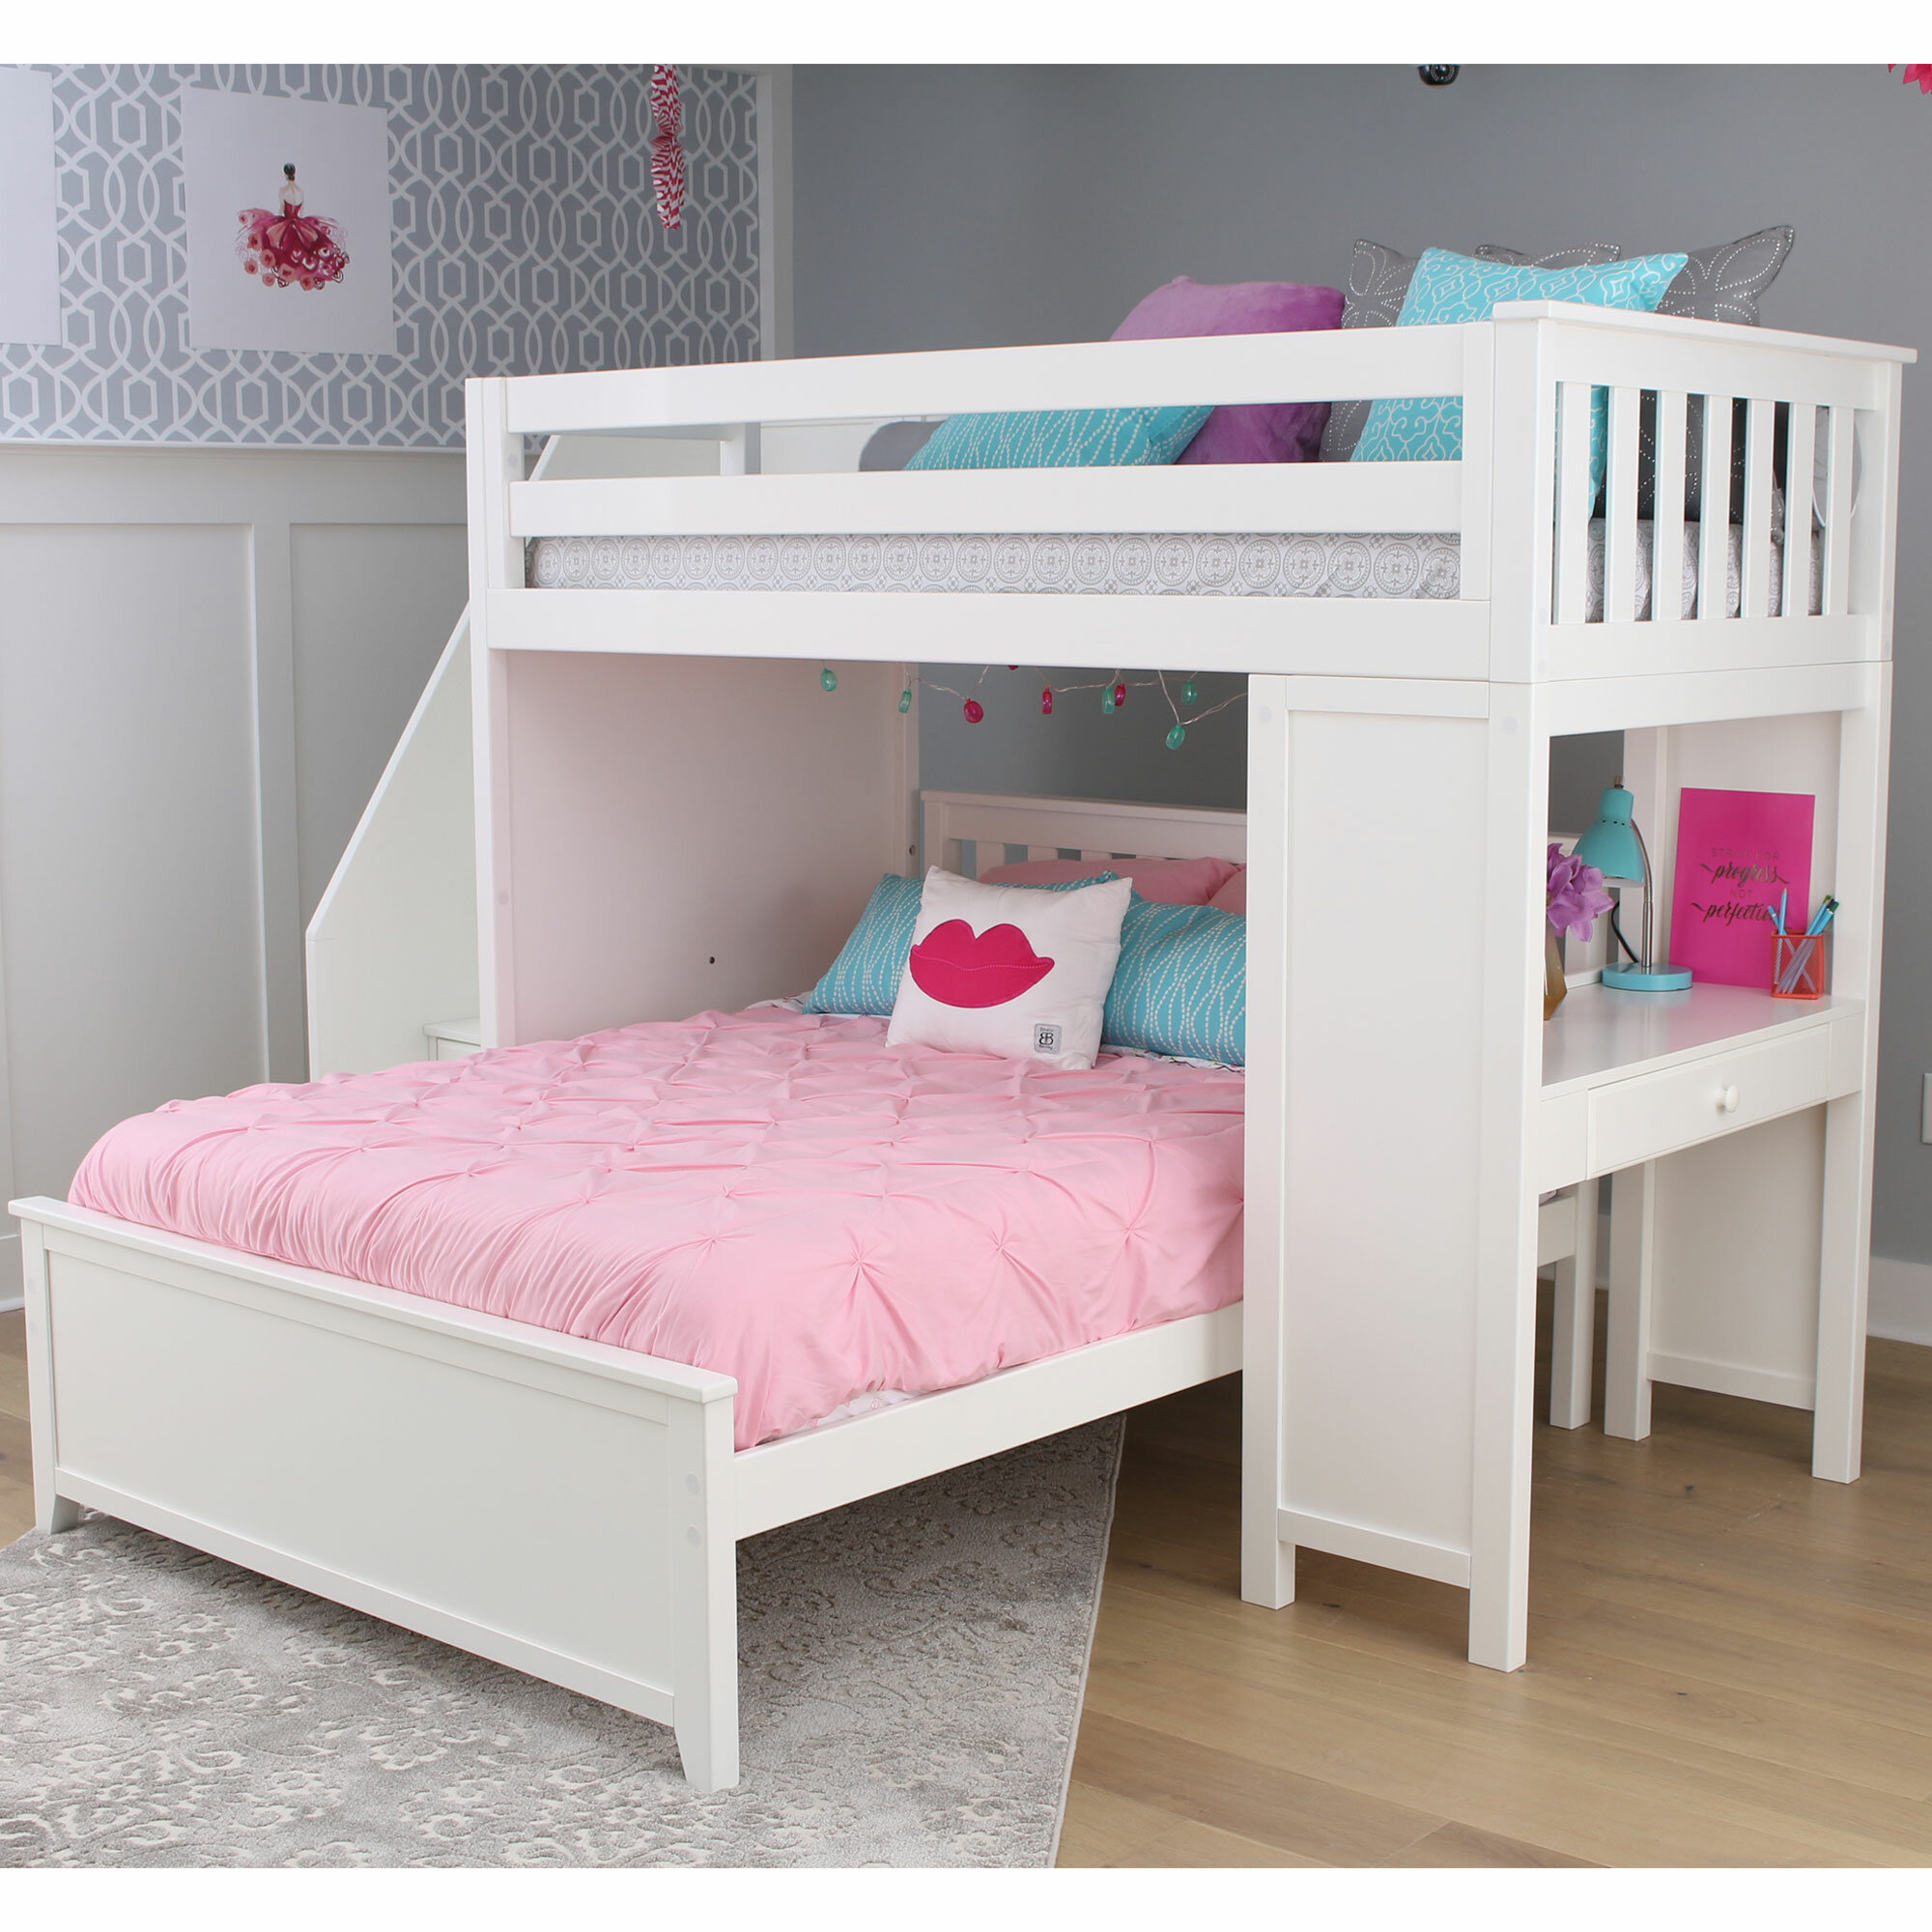 Loft Bed With Storage And Stairs To A Litter Free Bed Room